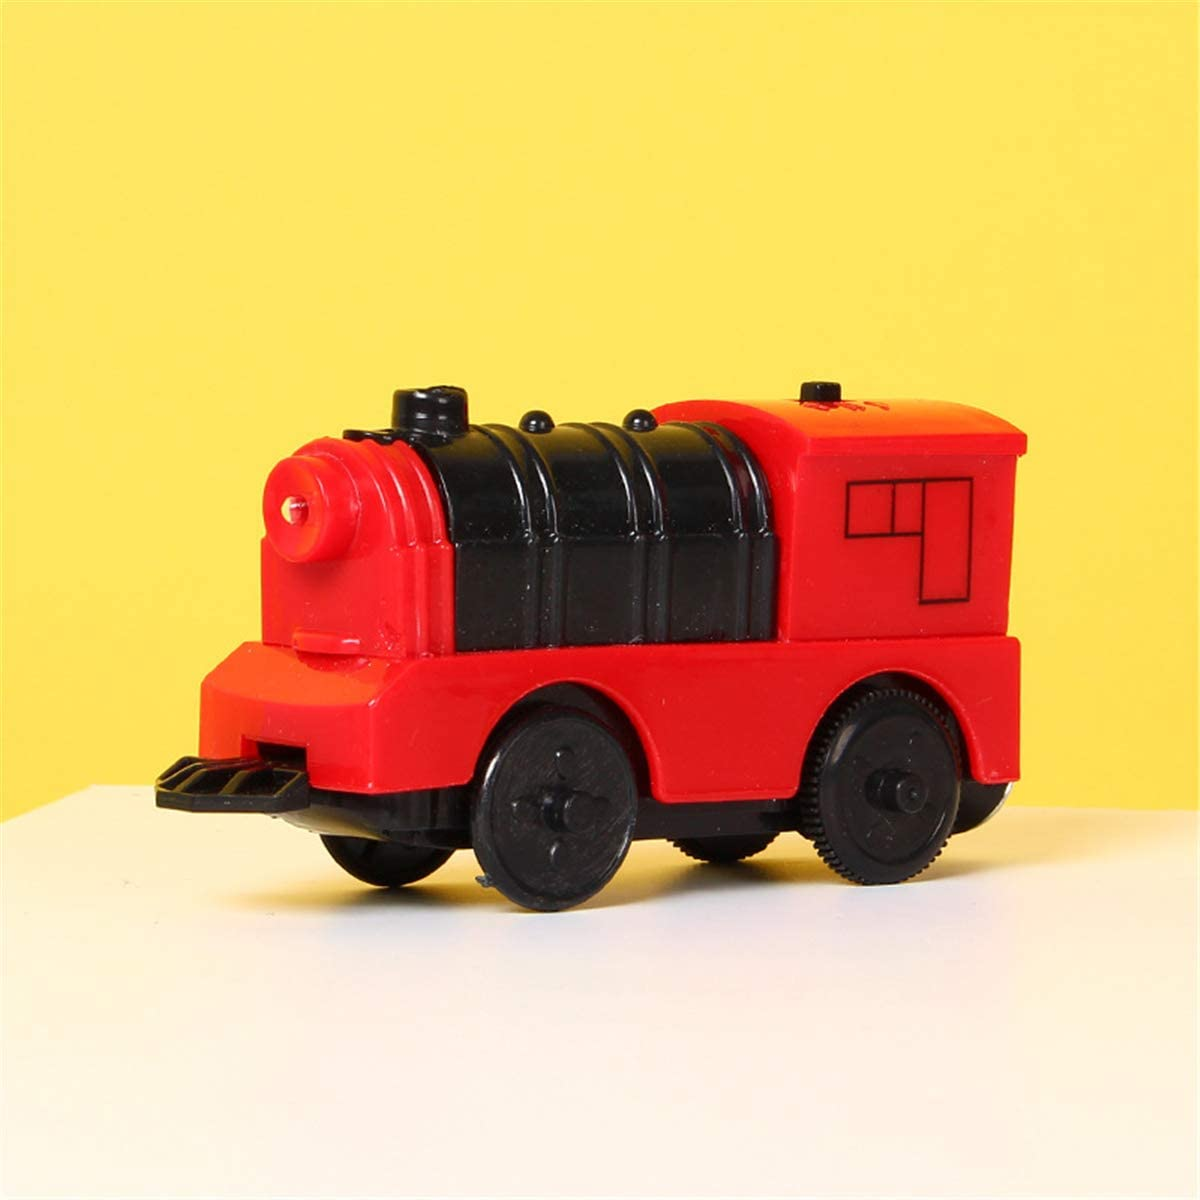 7haofang Combination of Magnetic Electric Locomotive Train Wooden Track Accessories